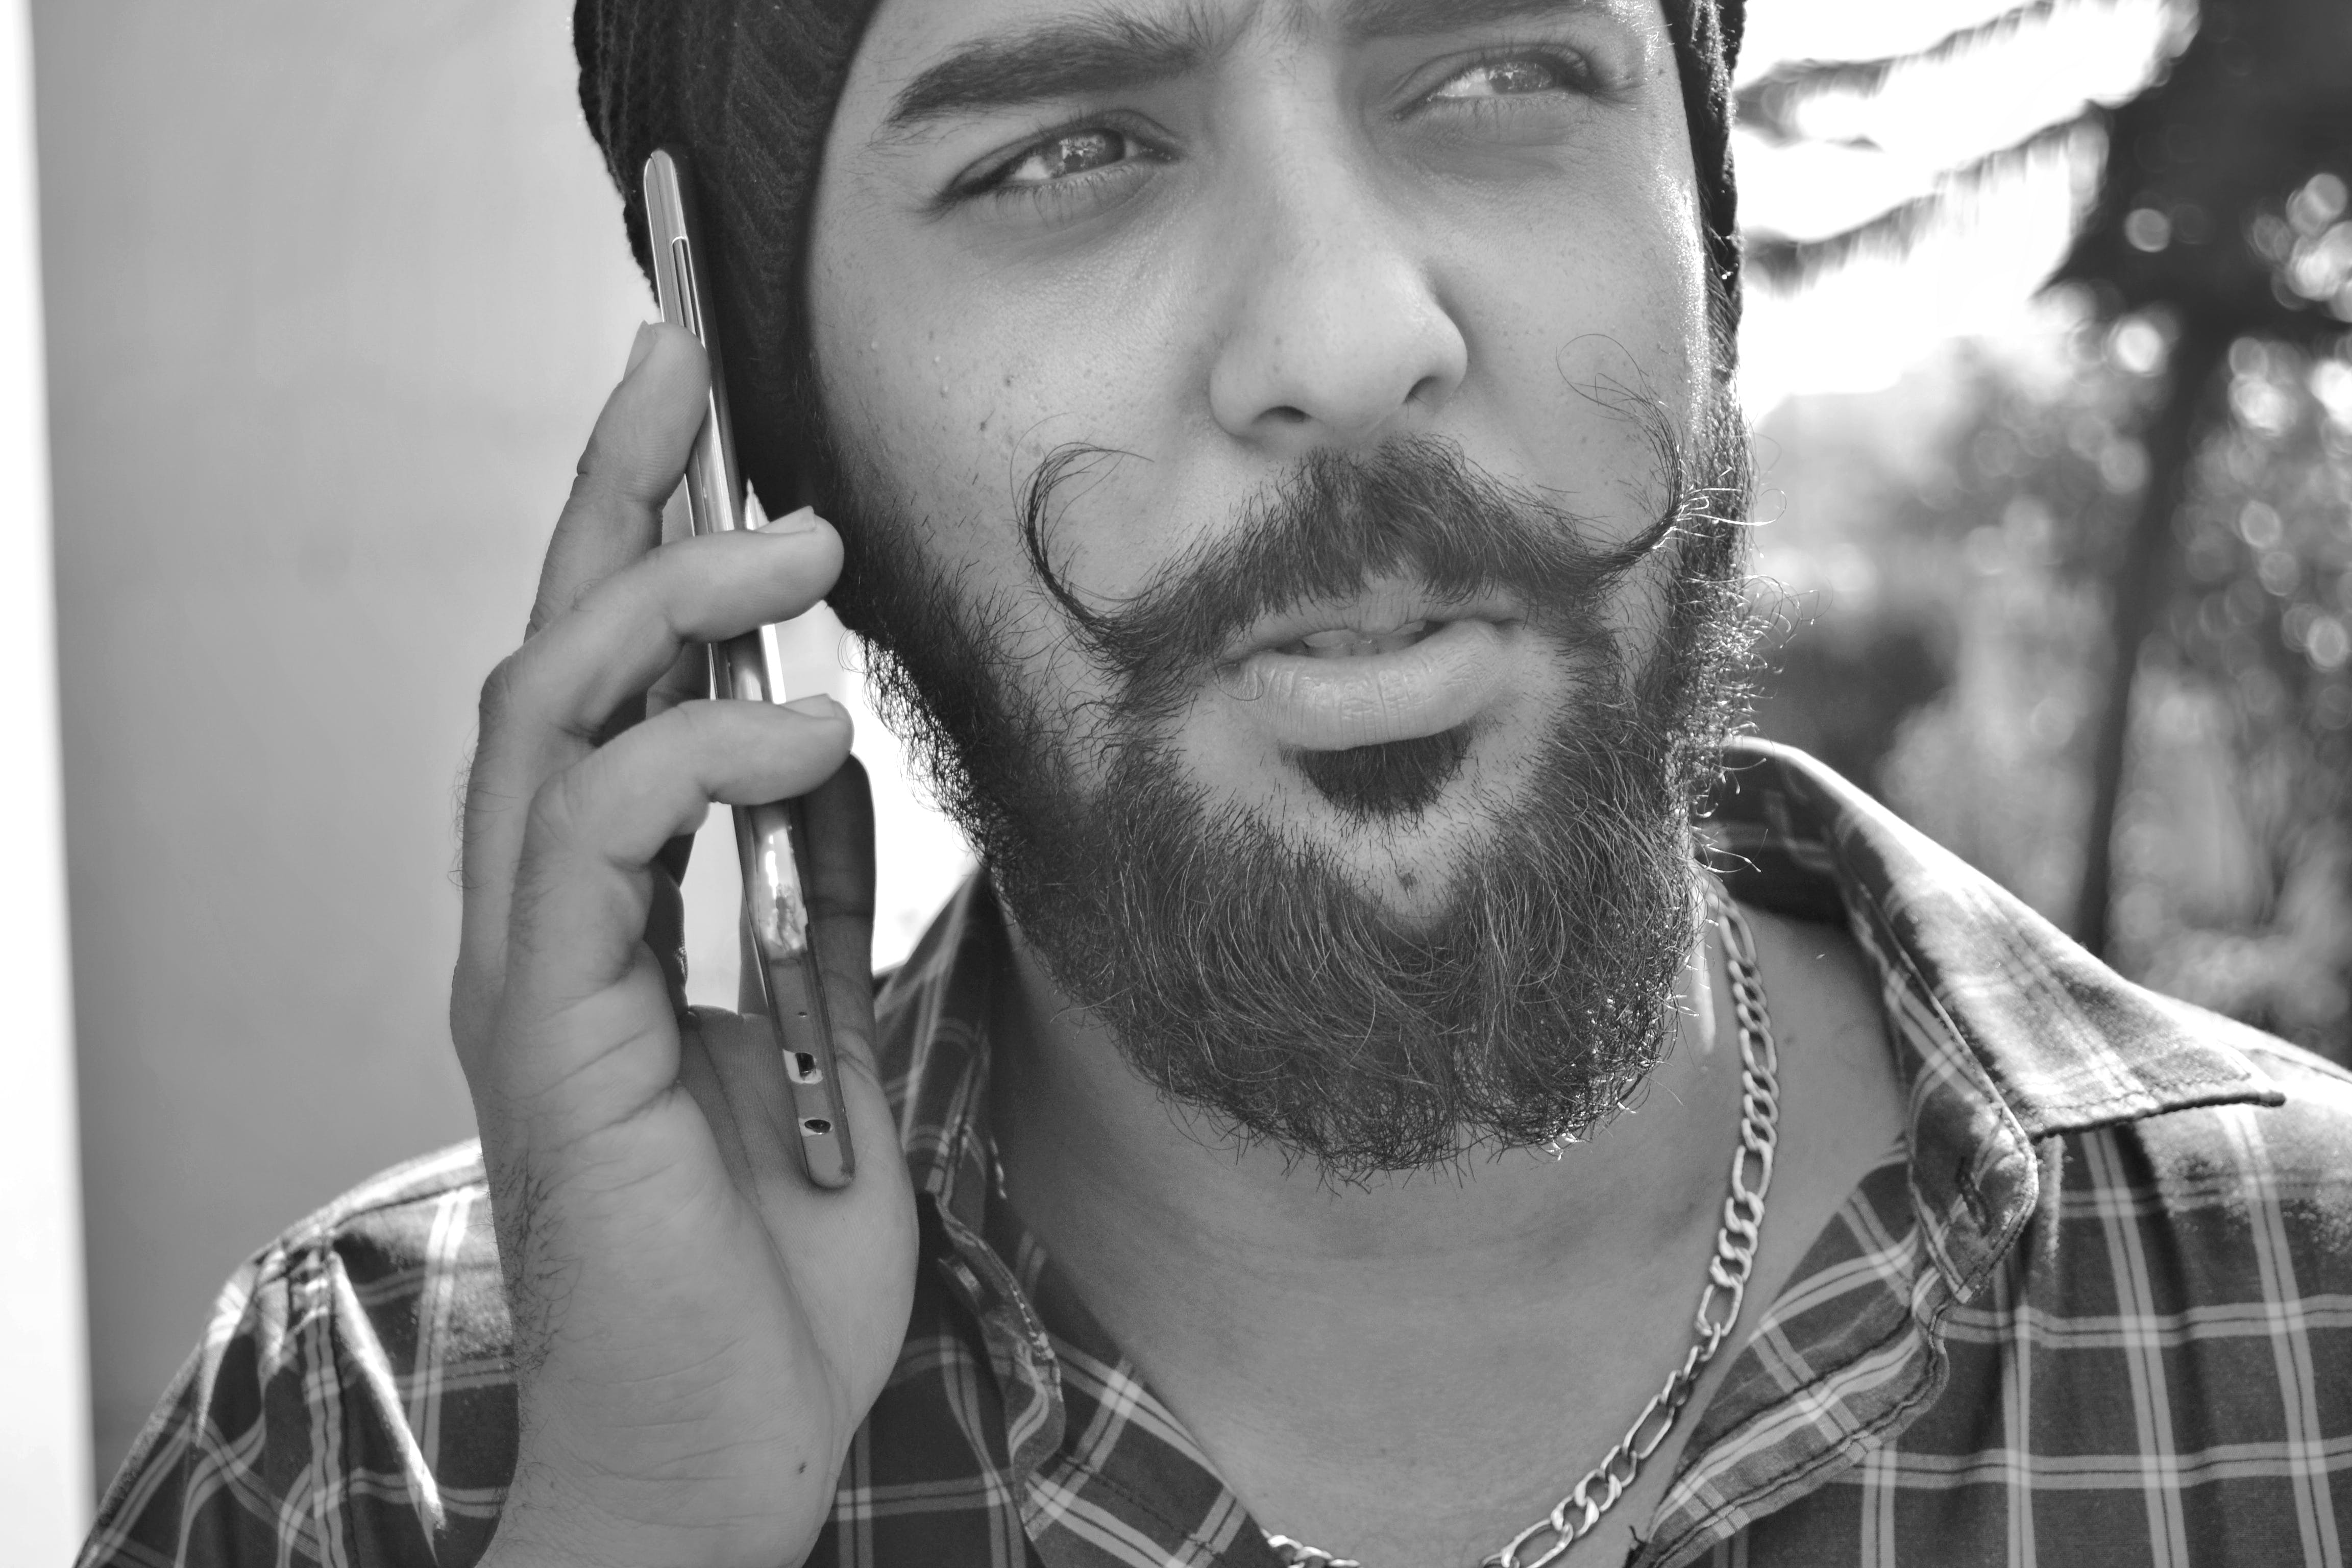 Grayscale Portrait Photo of Man Holding Phone